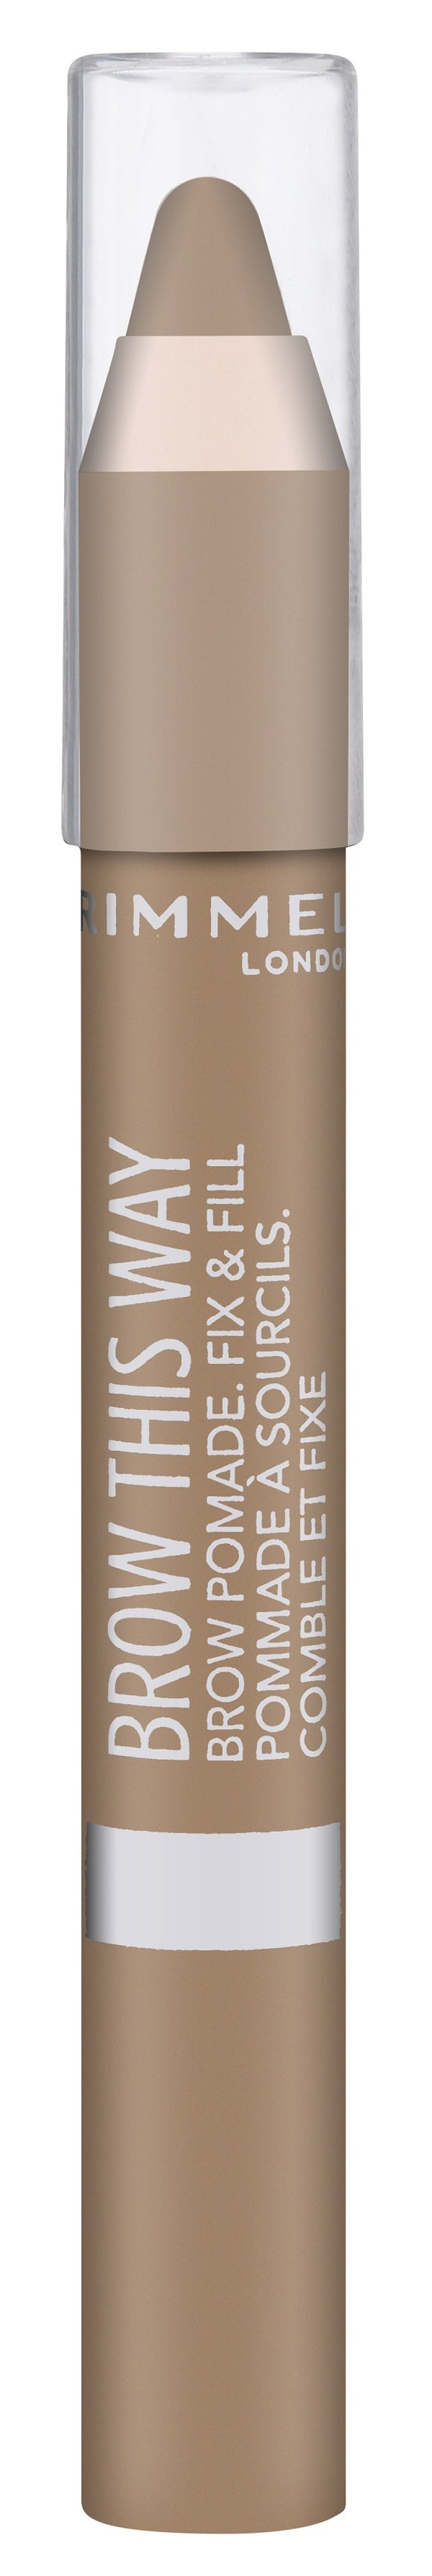 Rimmel Brow This Way Eyebrow Pomade 001 Light